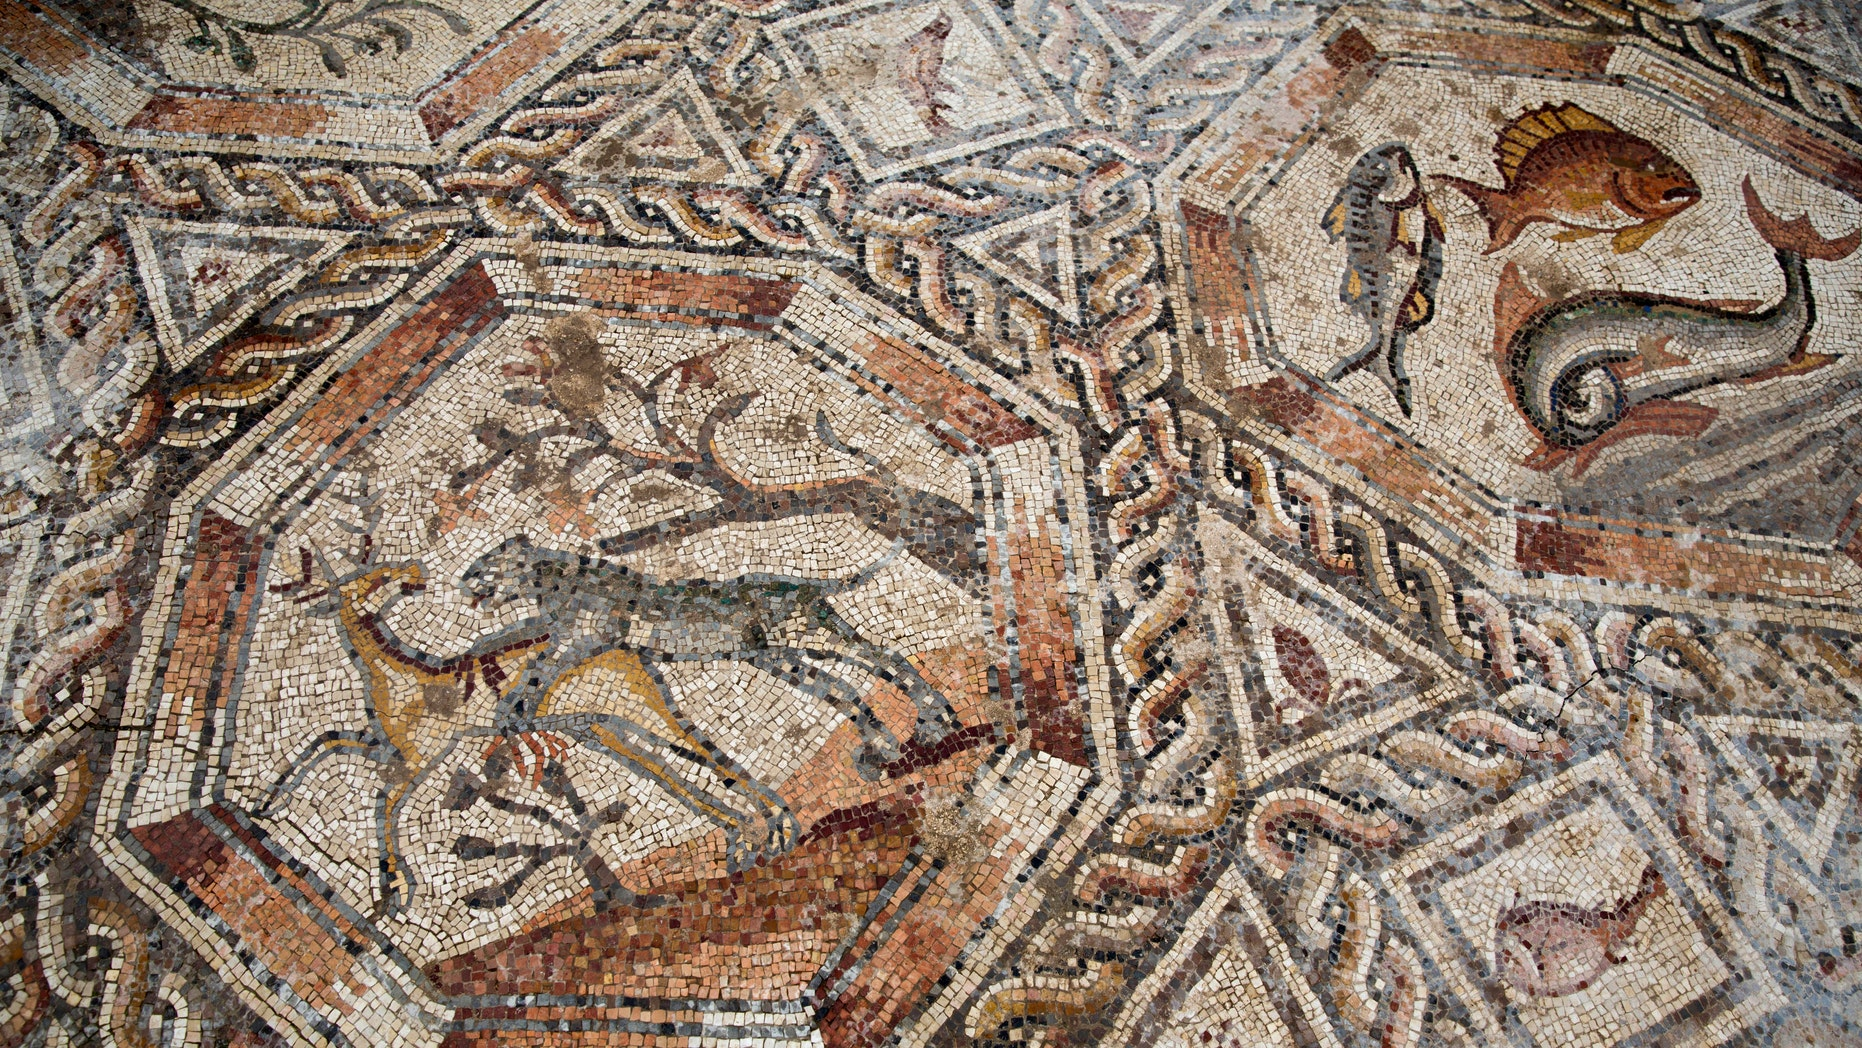 A partial view of a 1,700-year-old Roman-era mosaic floor in Lod, Israel, Monday, Nov. 16, 2015. (AP Photo/Ariel Schalit)